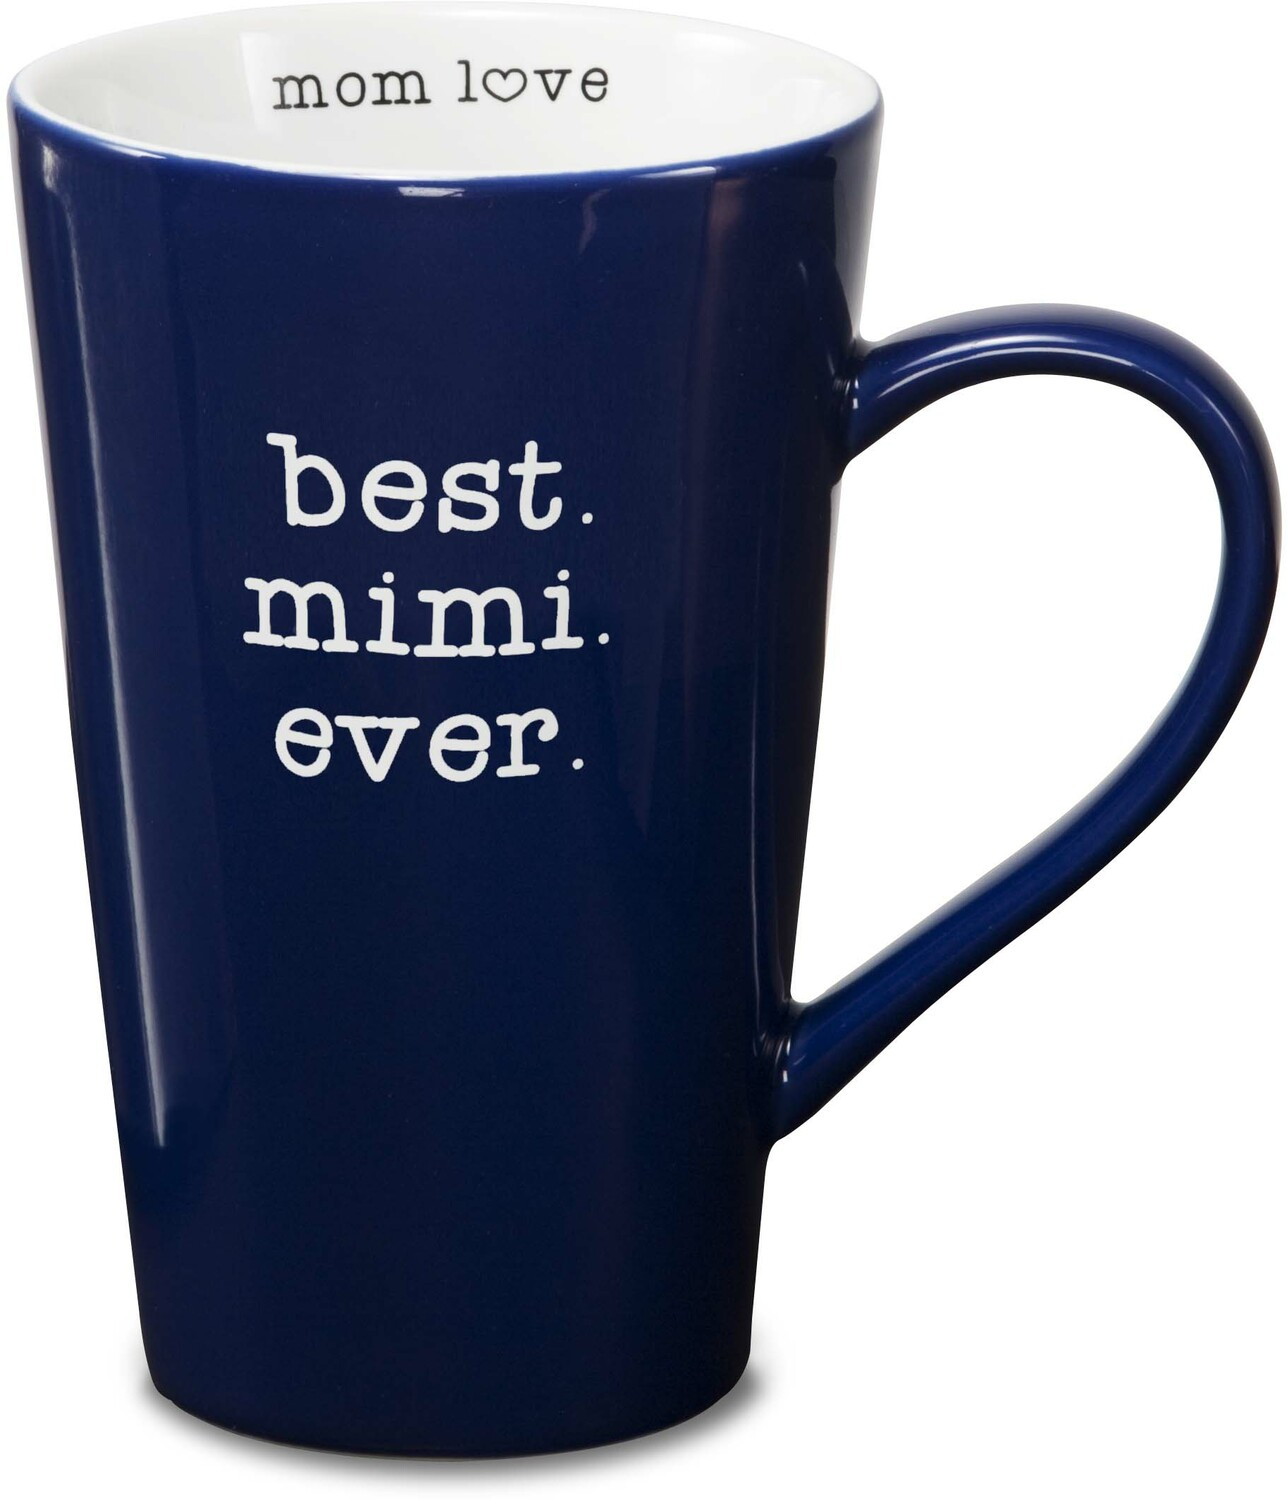 Best Mimi by Mom Love - Best Mimi - 18 oz Latte Cup